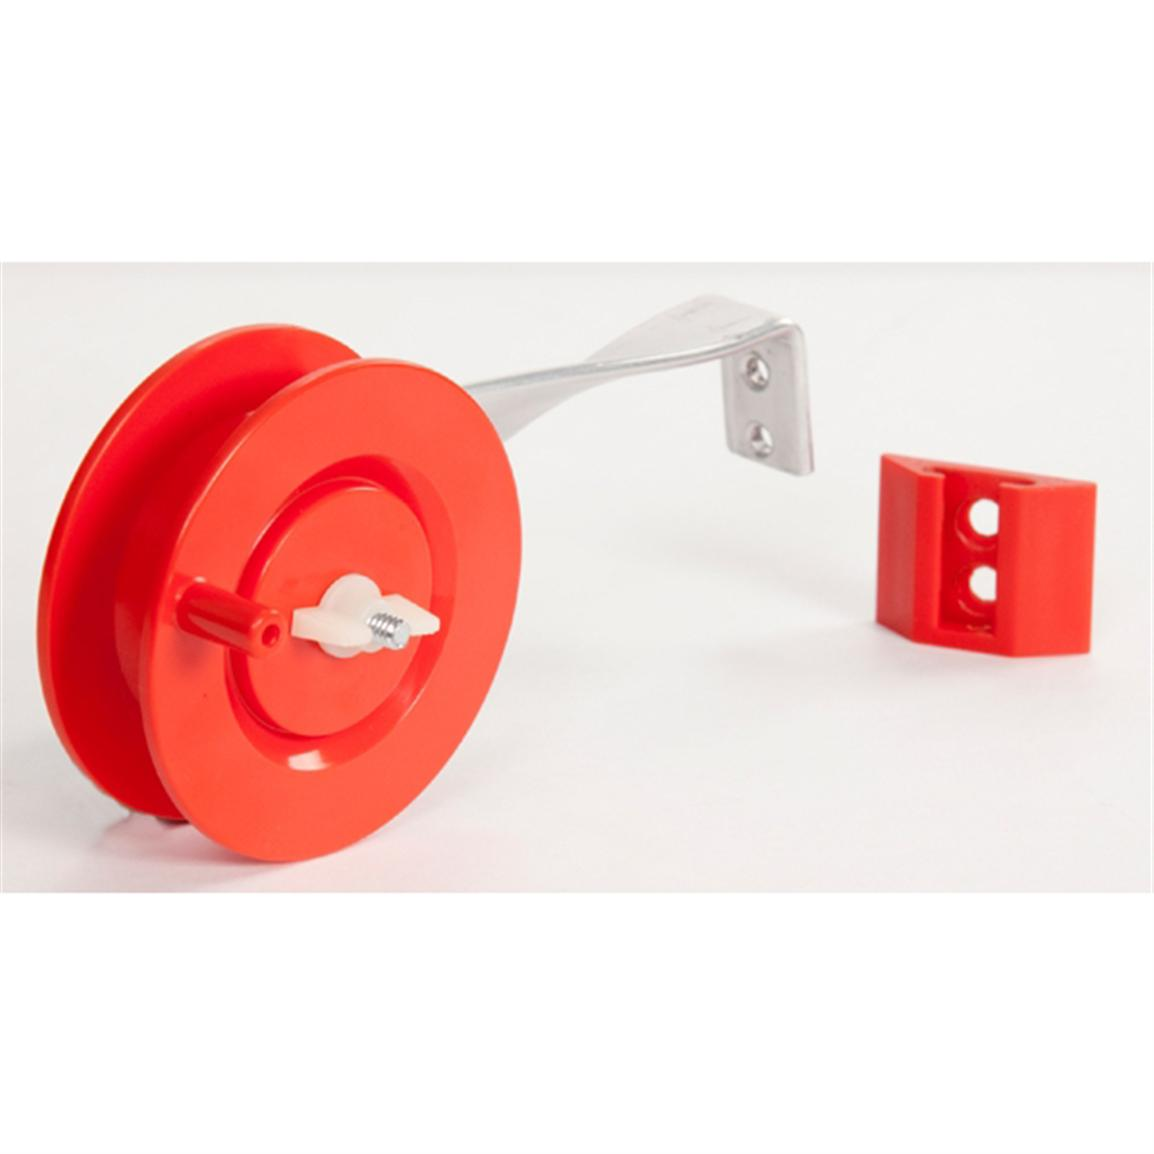 Pa plastic rattle reel long arm with bracket mount for Ice fishing rattle reels